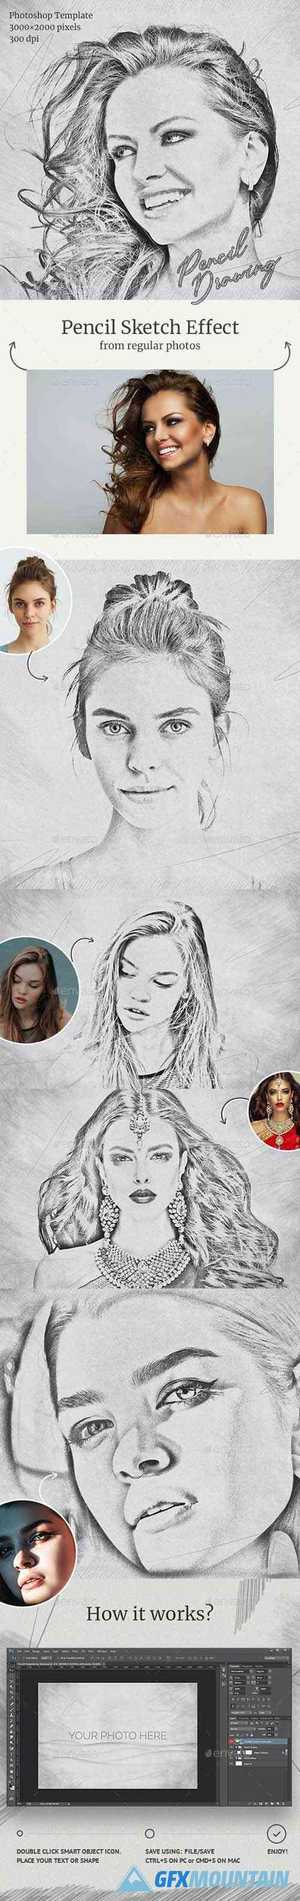 Pencil Drawing Photoshop Template 28663627